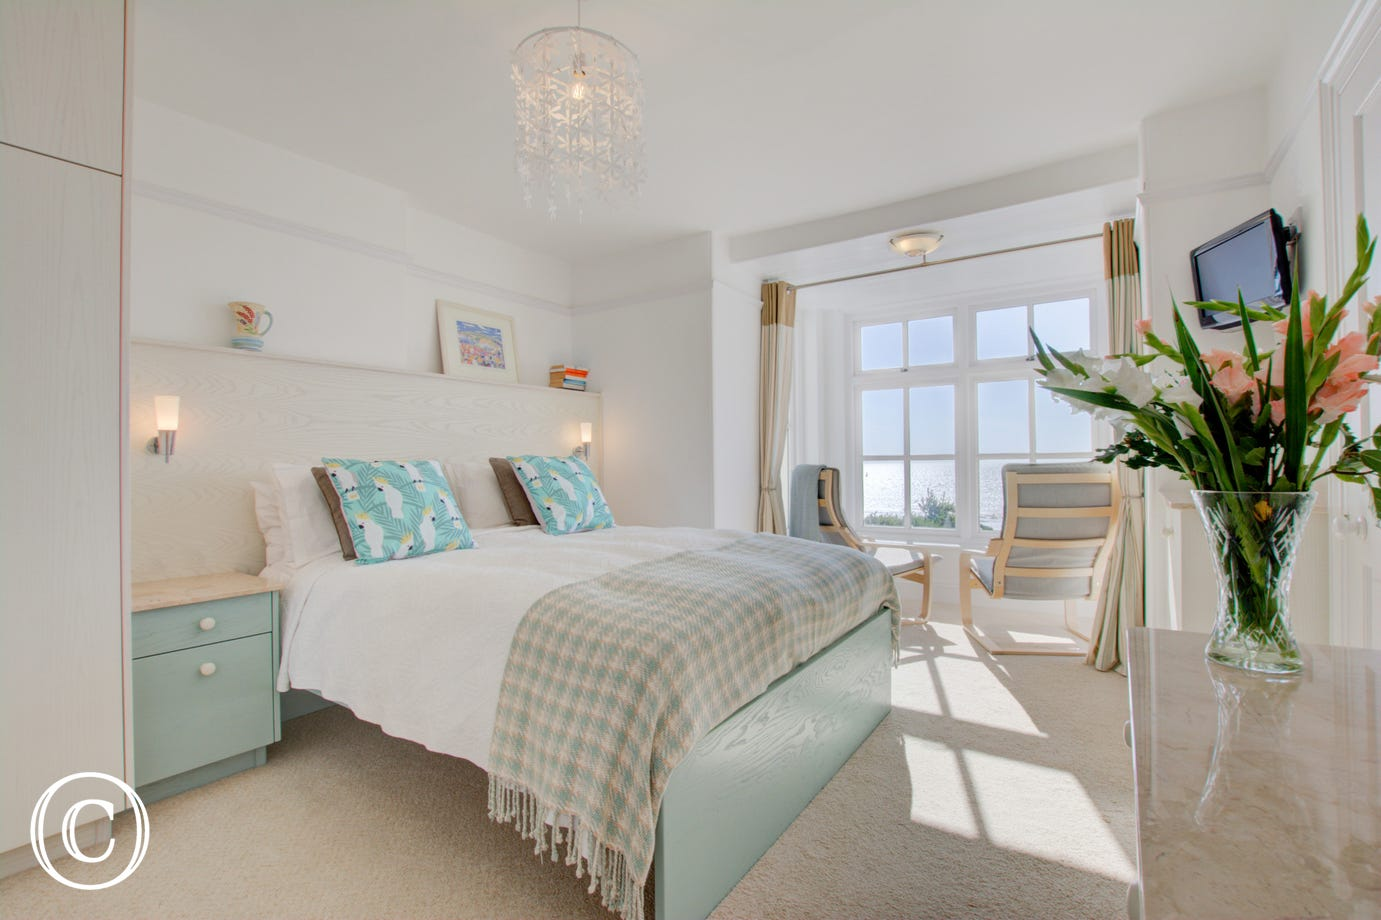 Bedroom 1 with seating area to enjoy the outstanding views